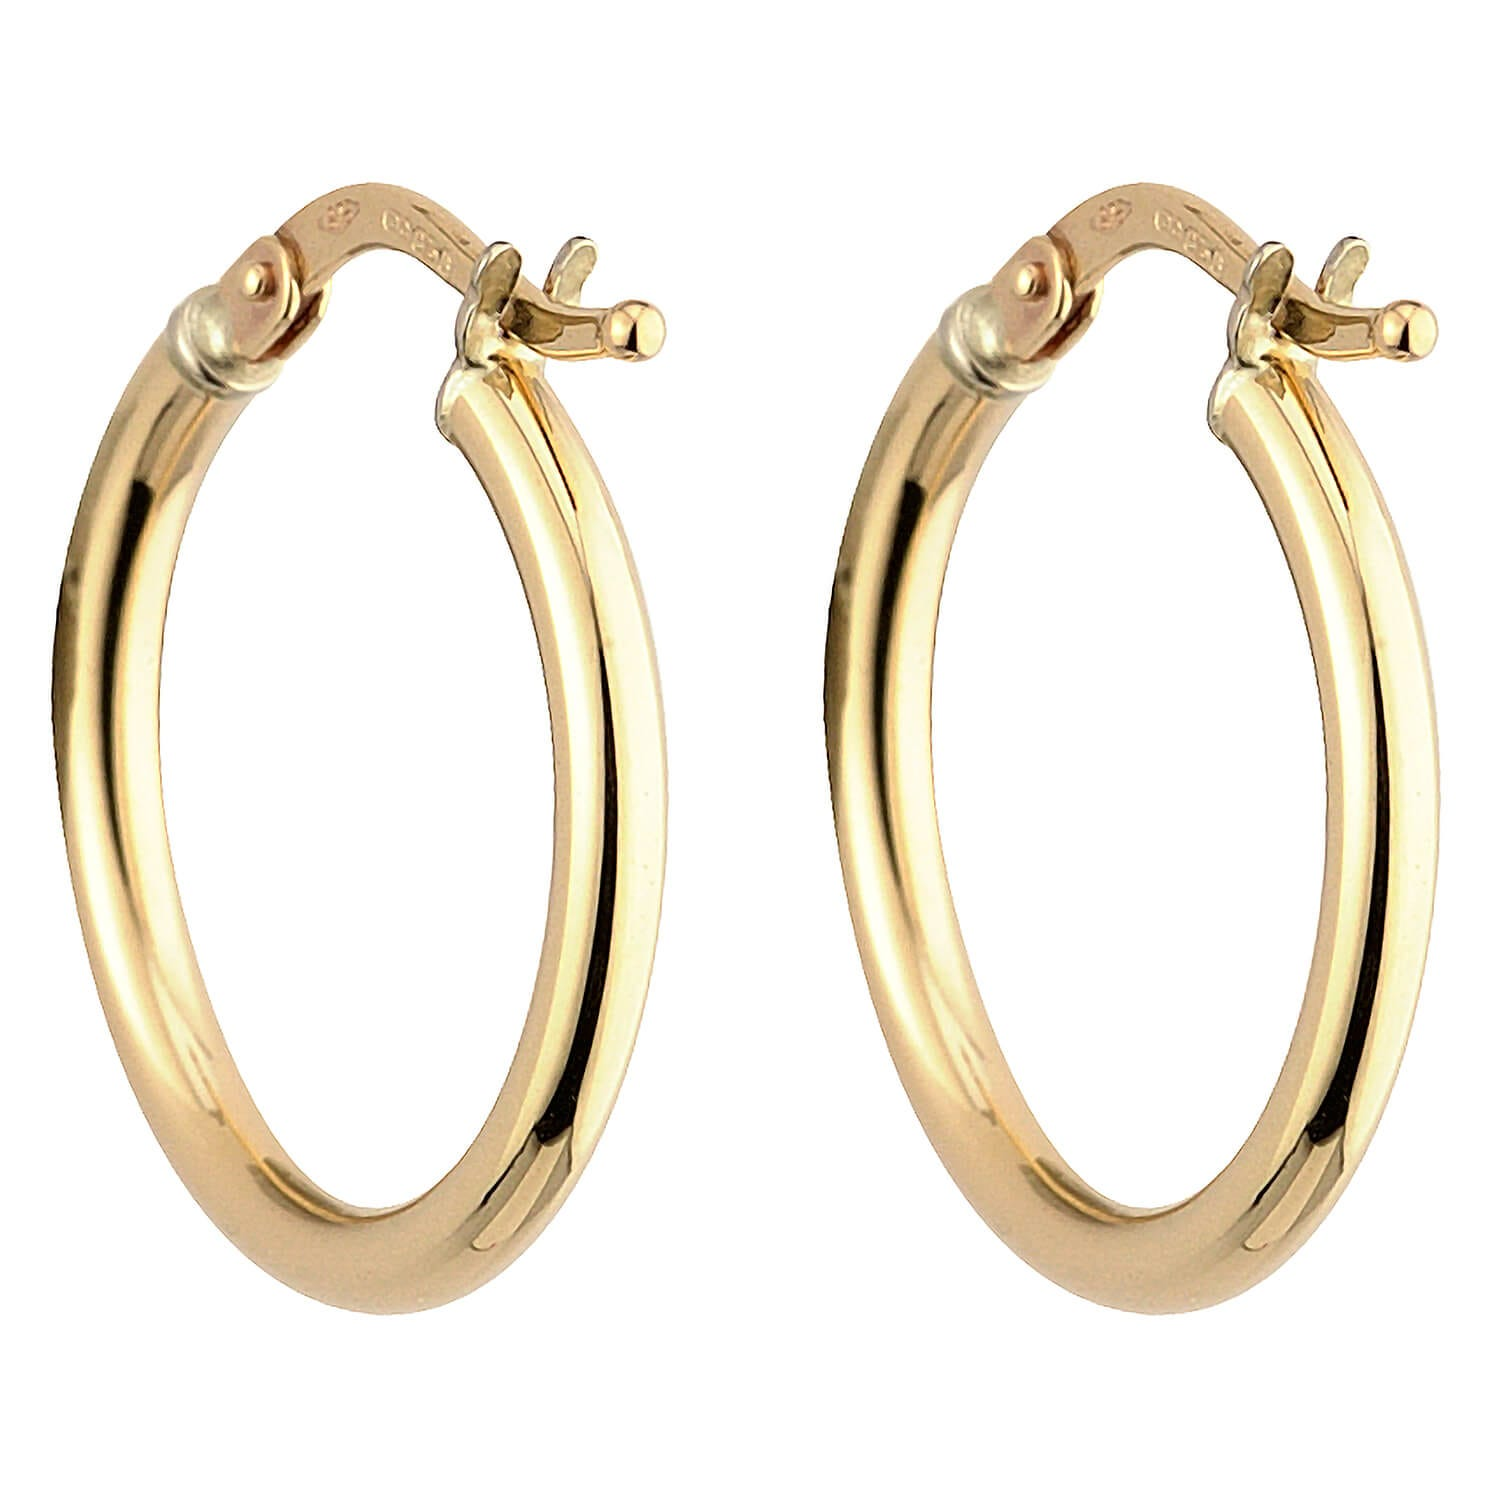 9ct gold small hoop earrings